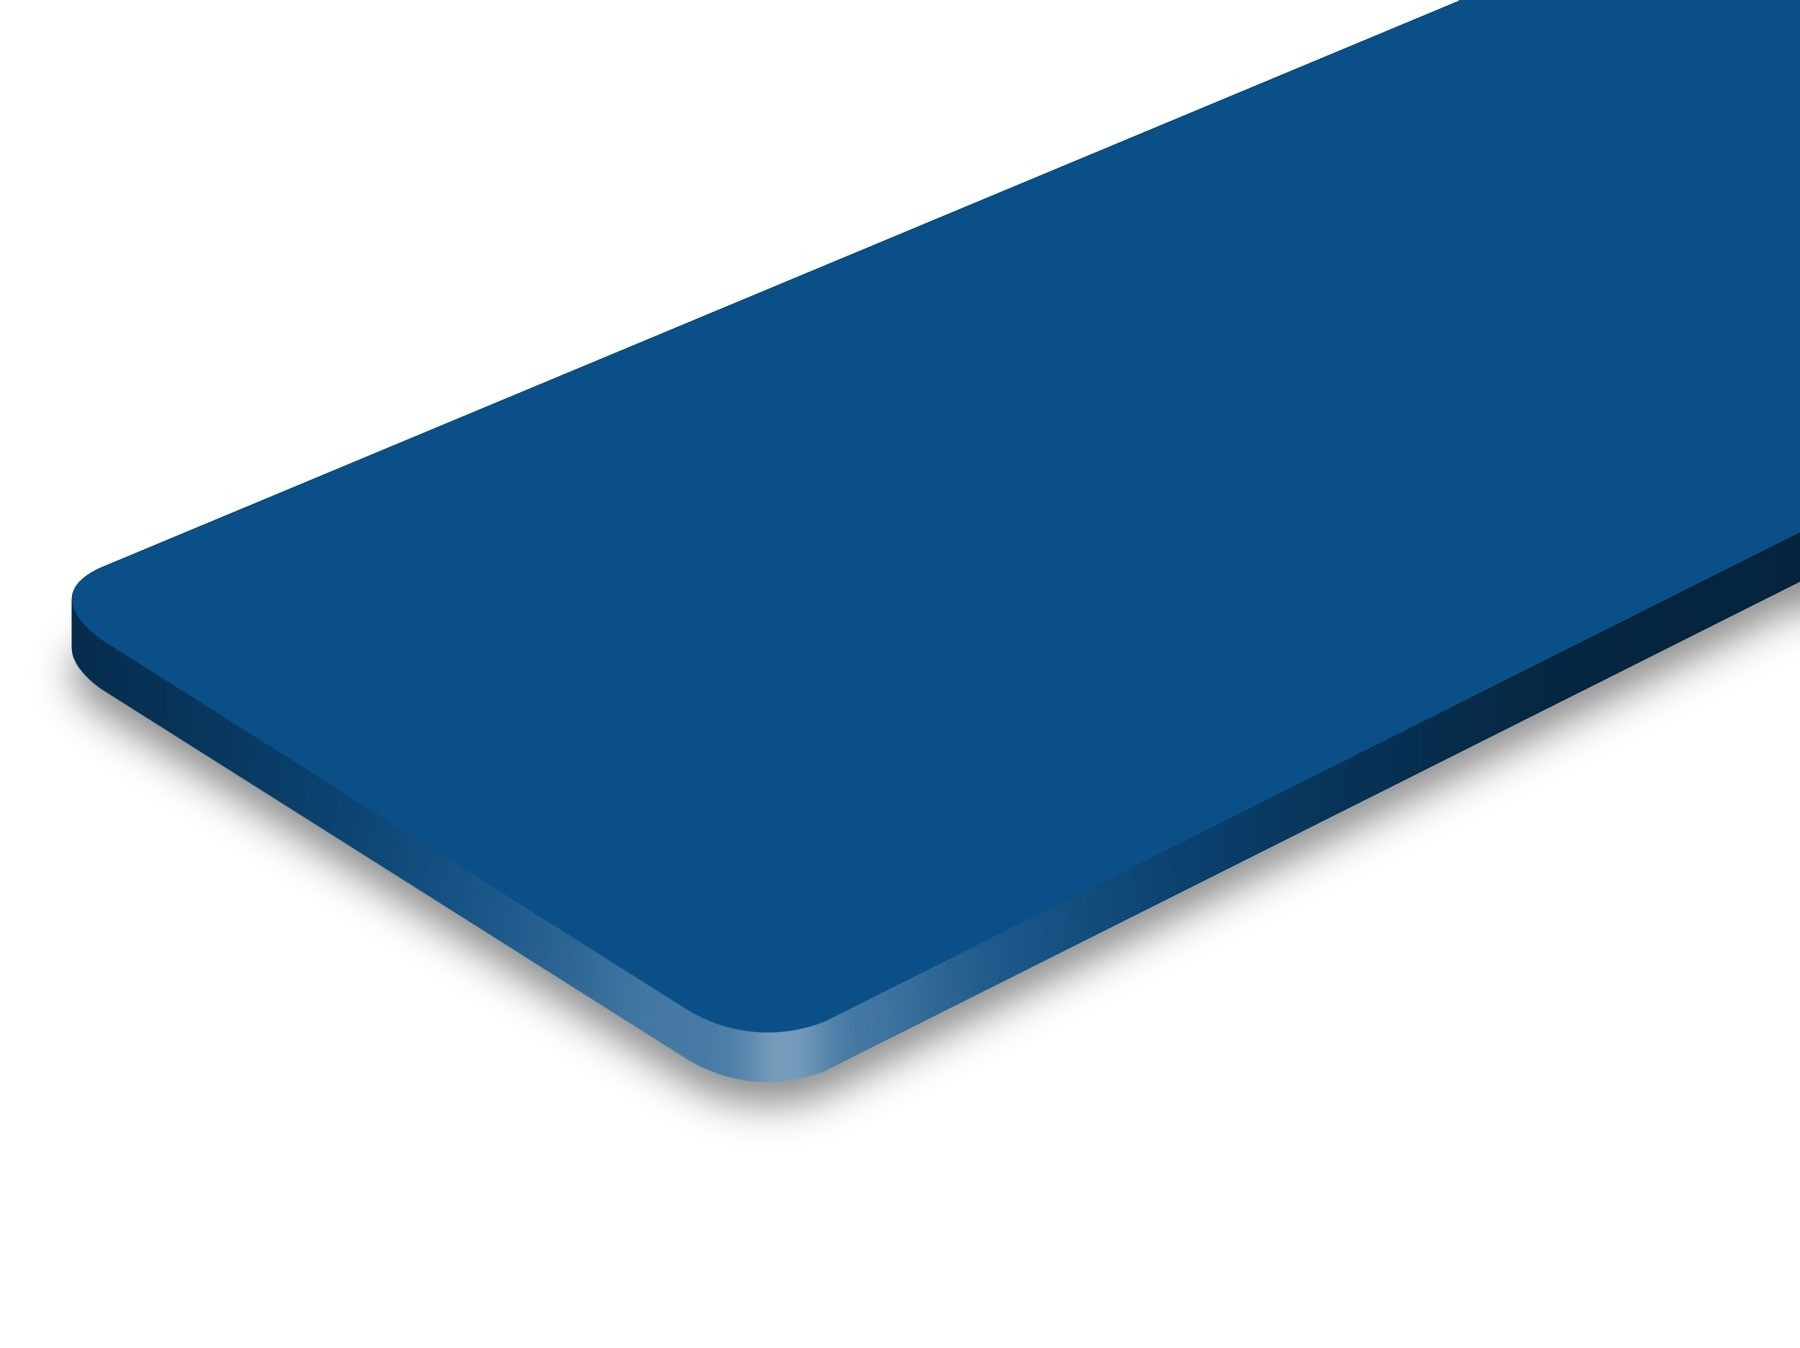 TroLase ADA Signage, Blue, 1ply, 0.8 mm